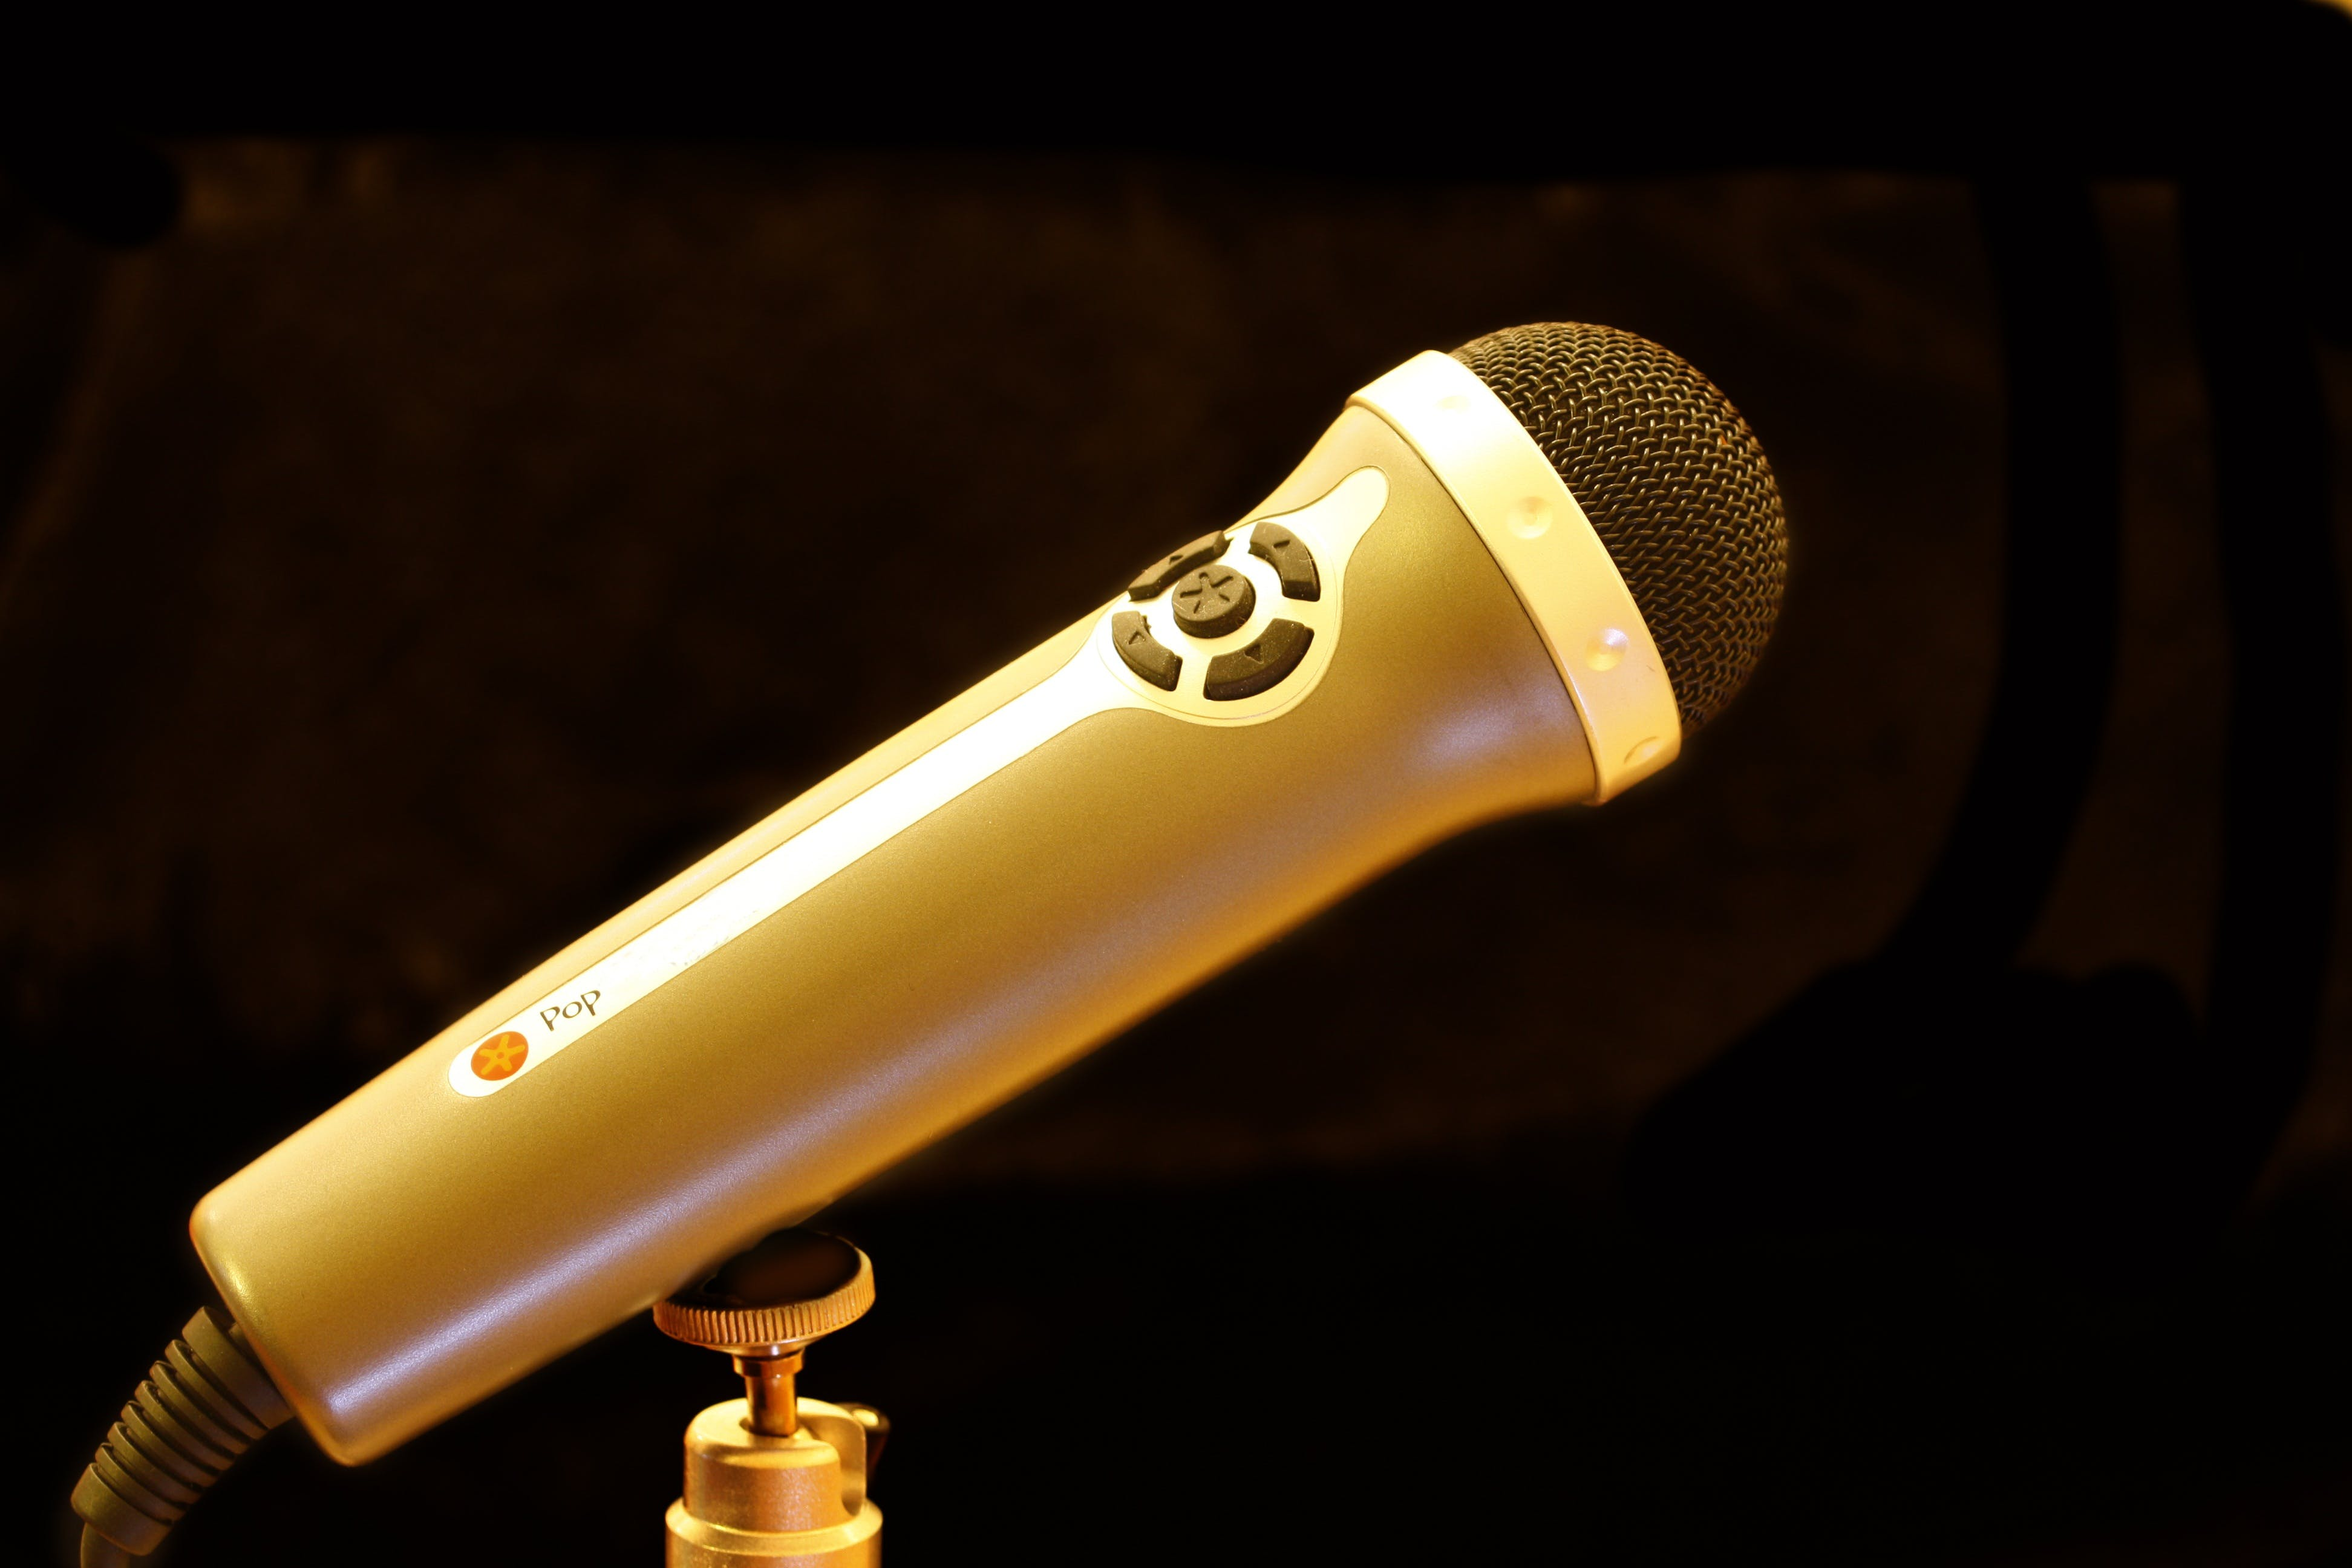 Brown and Silver Microphone